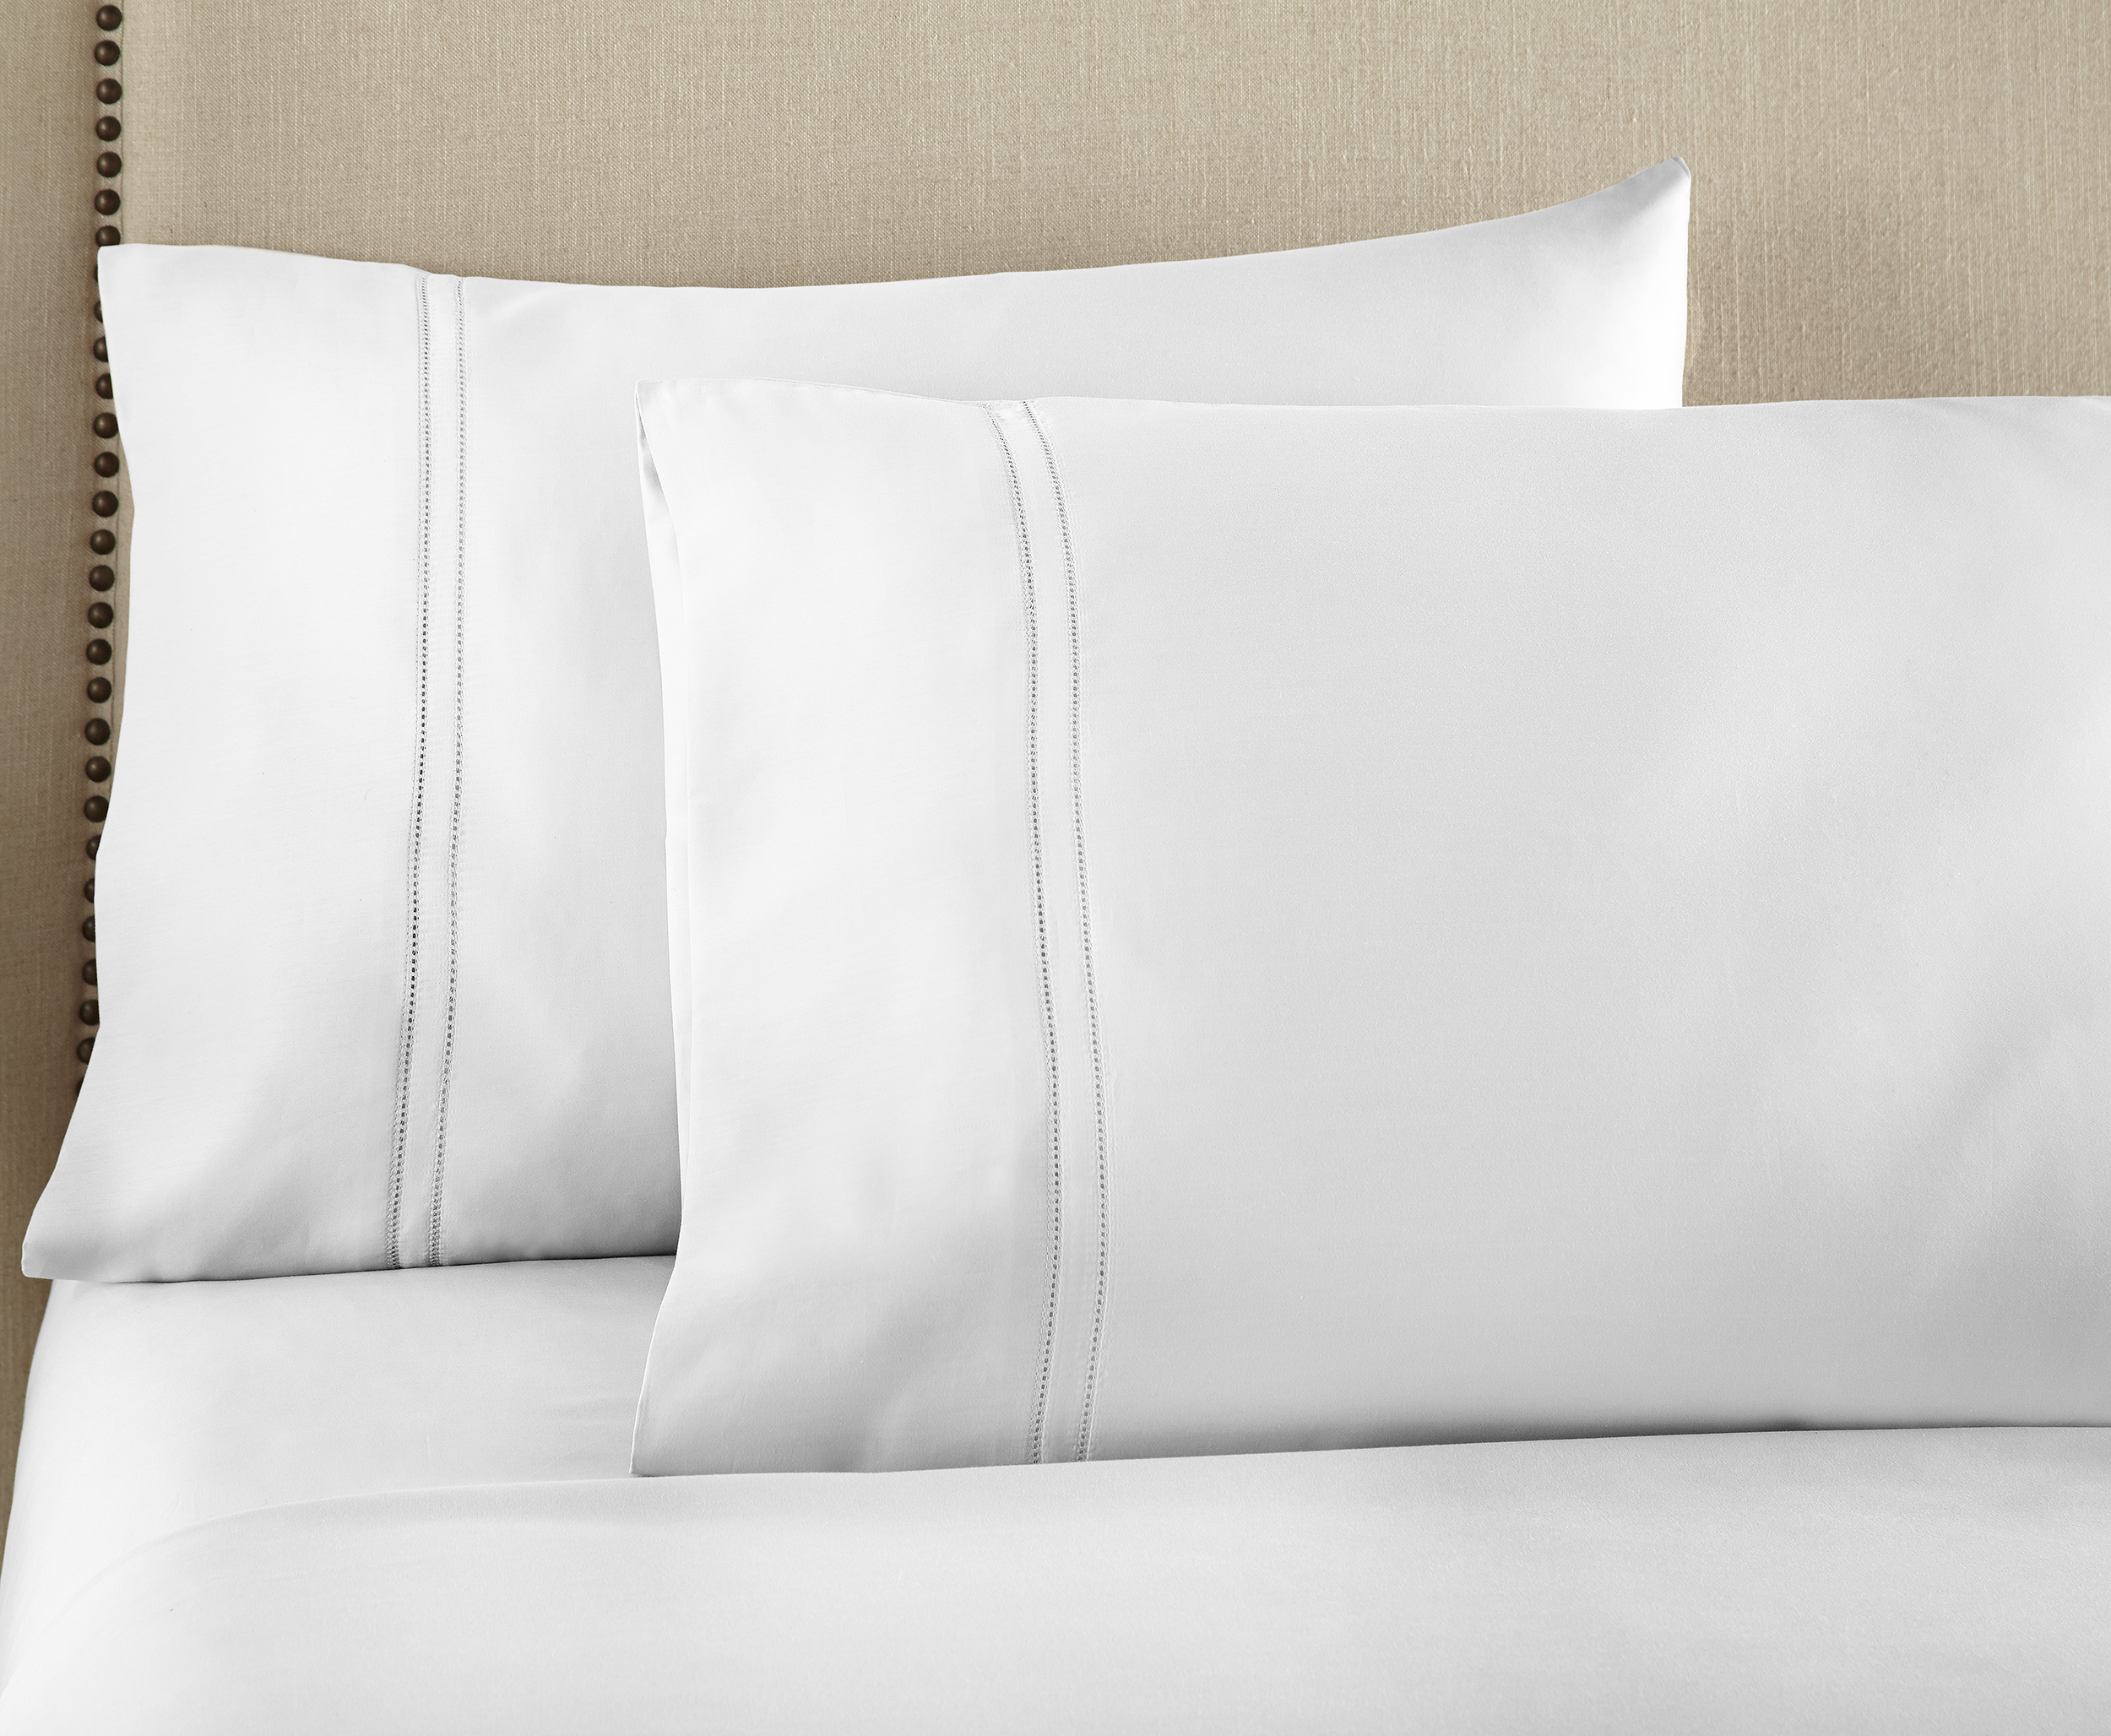 Pure 100 Egyptian Cotton Bed Sheets Are Great For All Skin Types Especially Sensitive This Natural Fabric Absorbs Excess Moisture Allowing Your